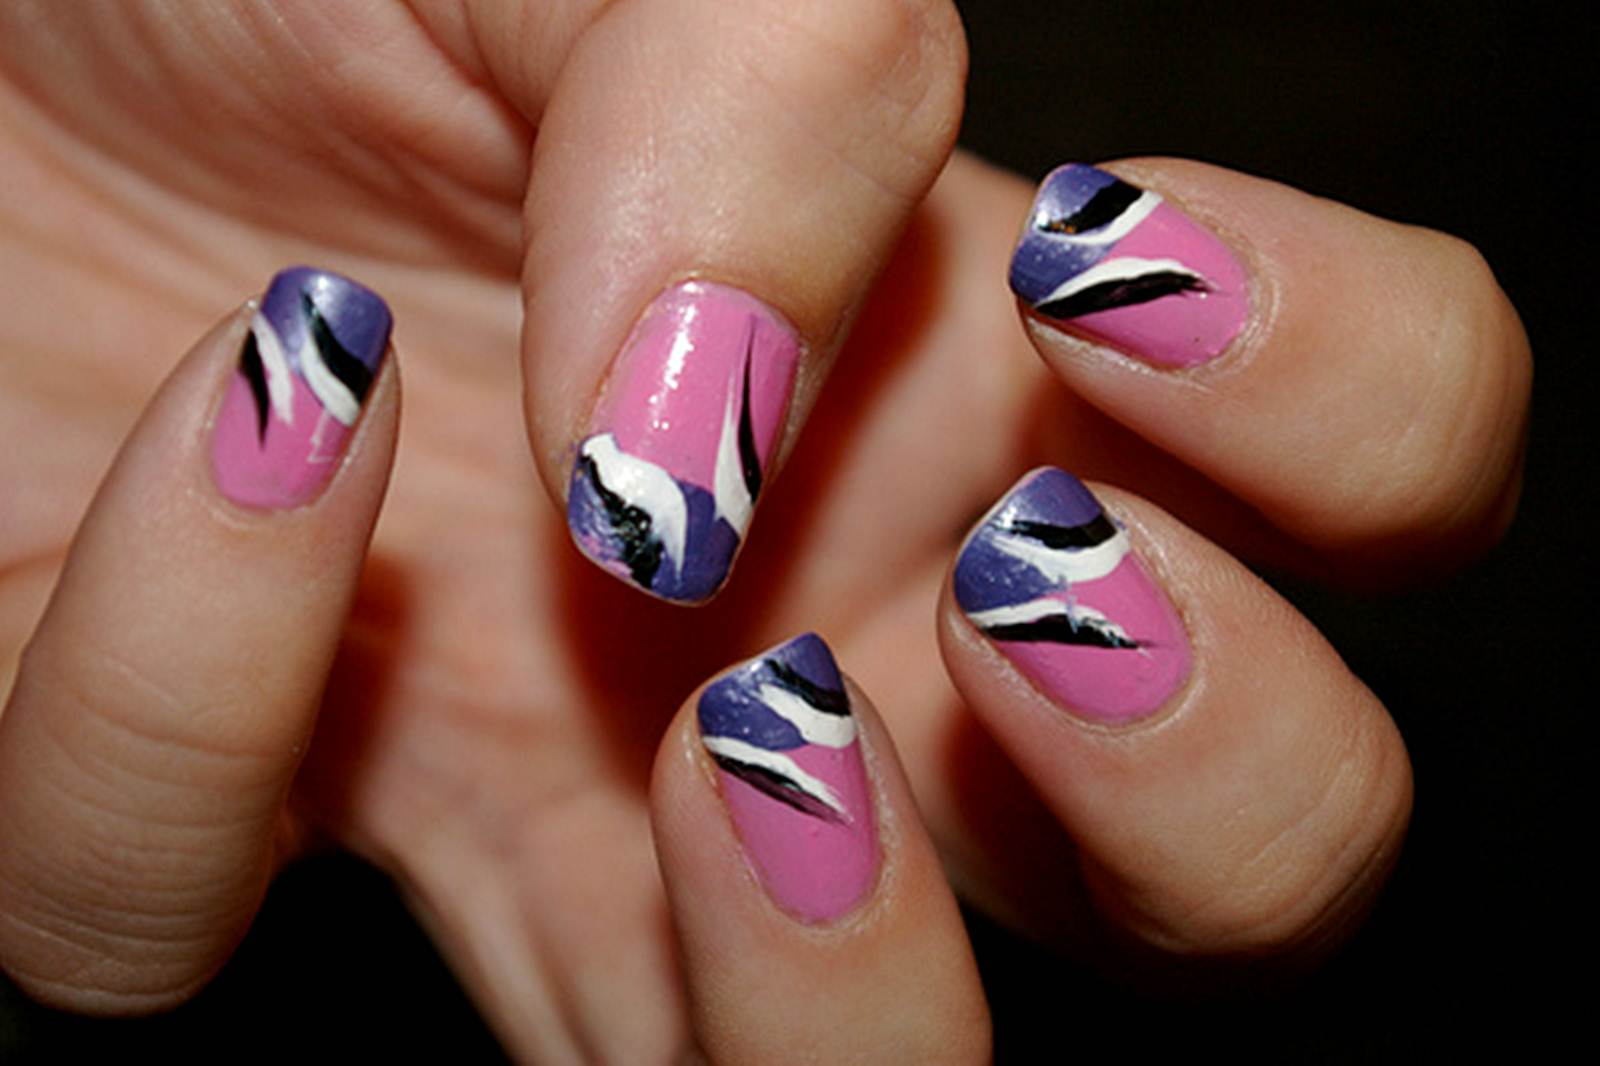 Cute Nail Designs Easy to Do at Home